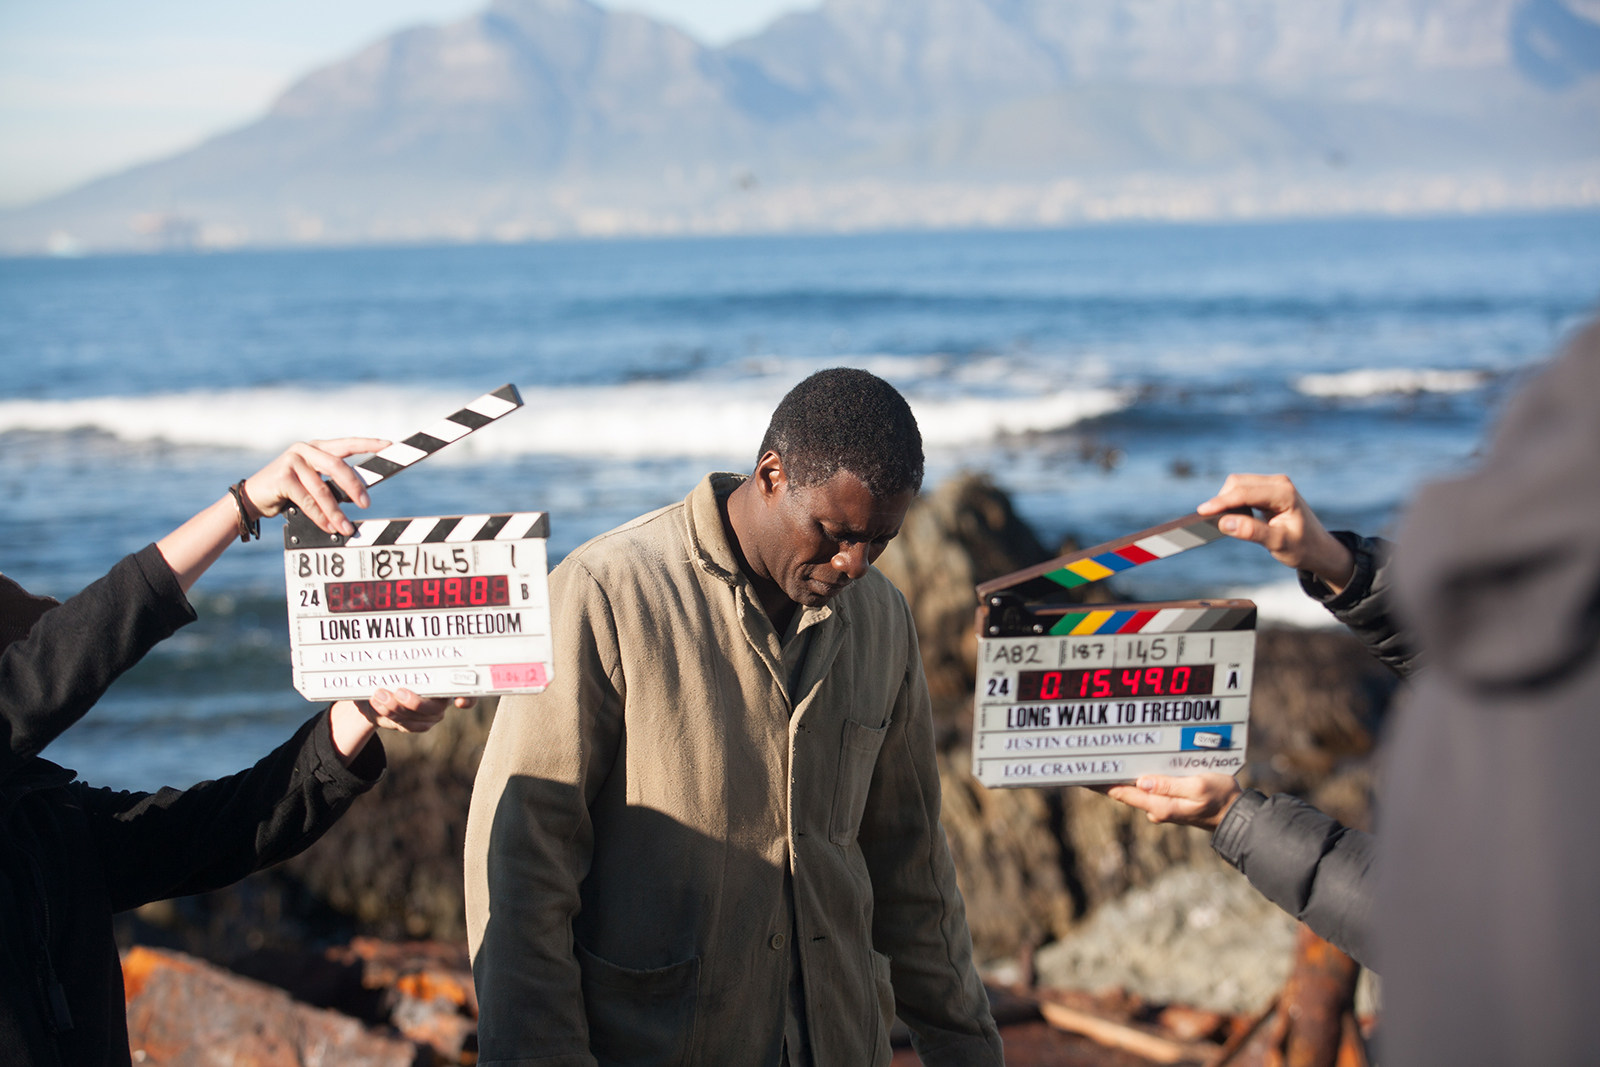 Mandela: Long Walk to Freedom (2013) Behind the Scenes